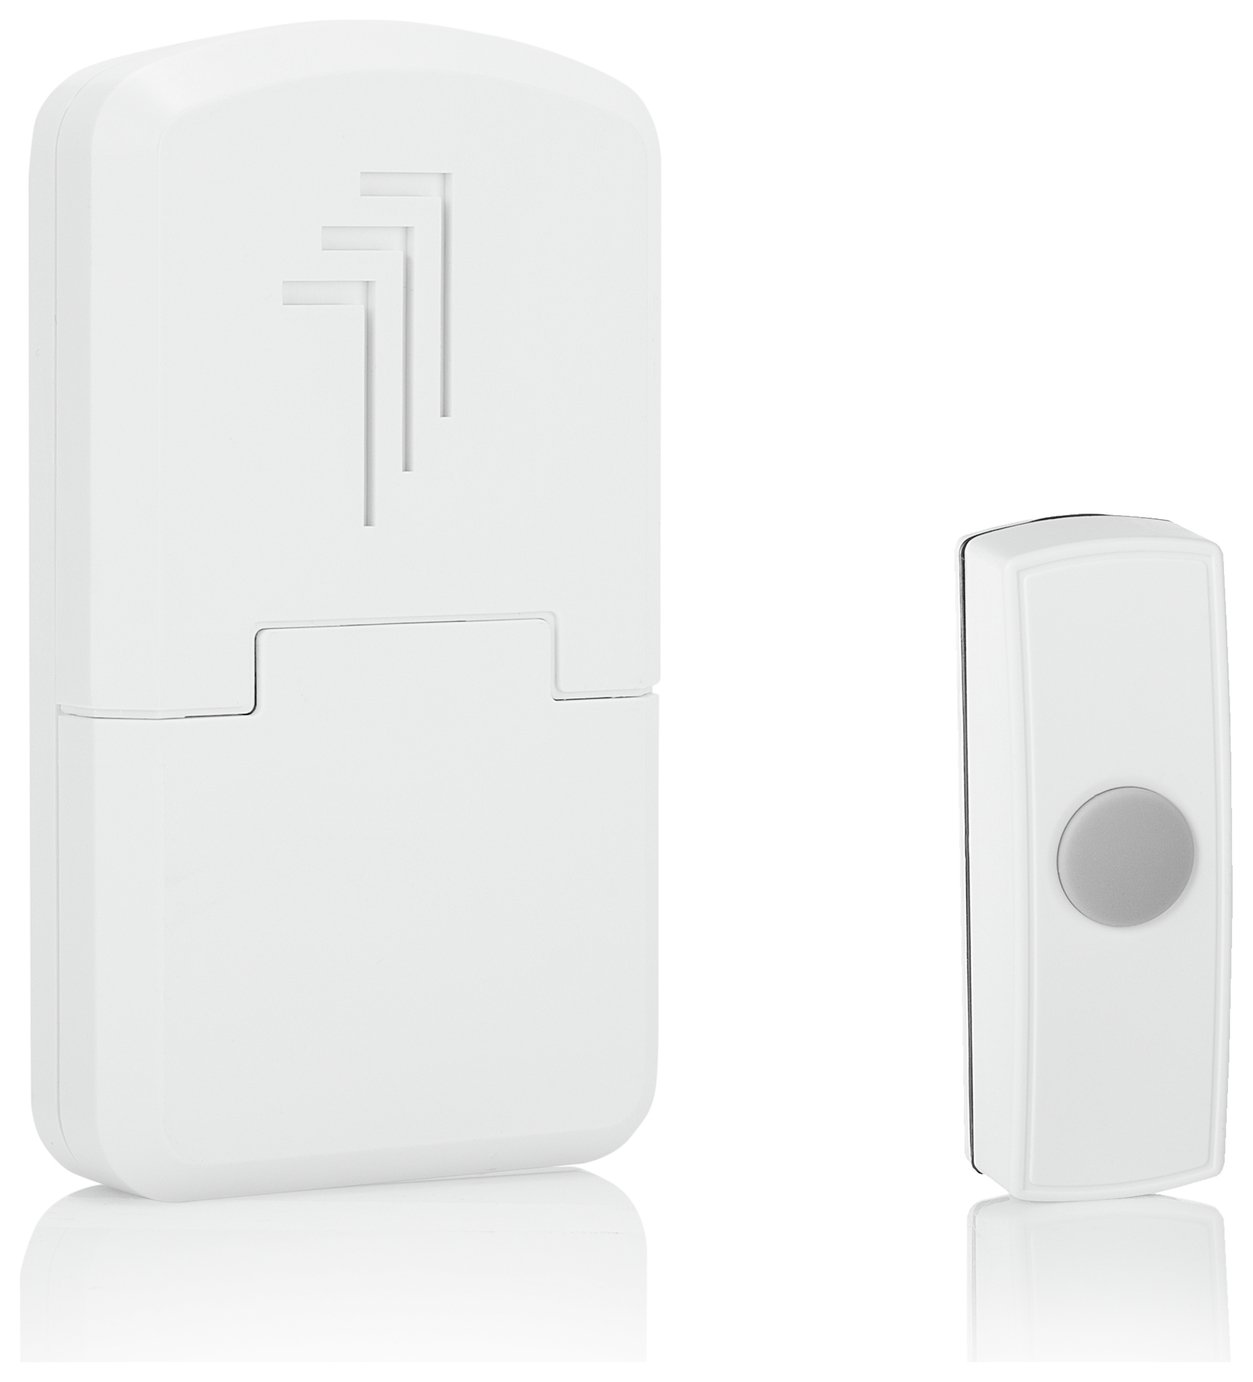 Image of Byron DB301 30m Wireless Doorbell with Portable Chime